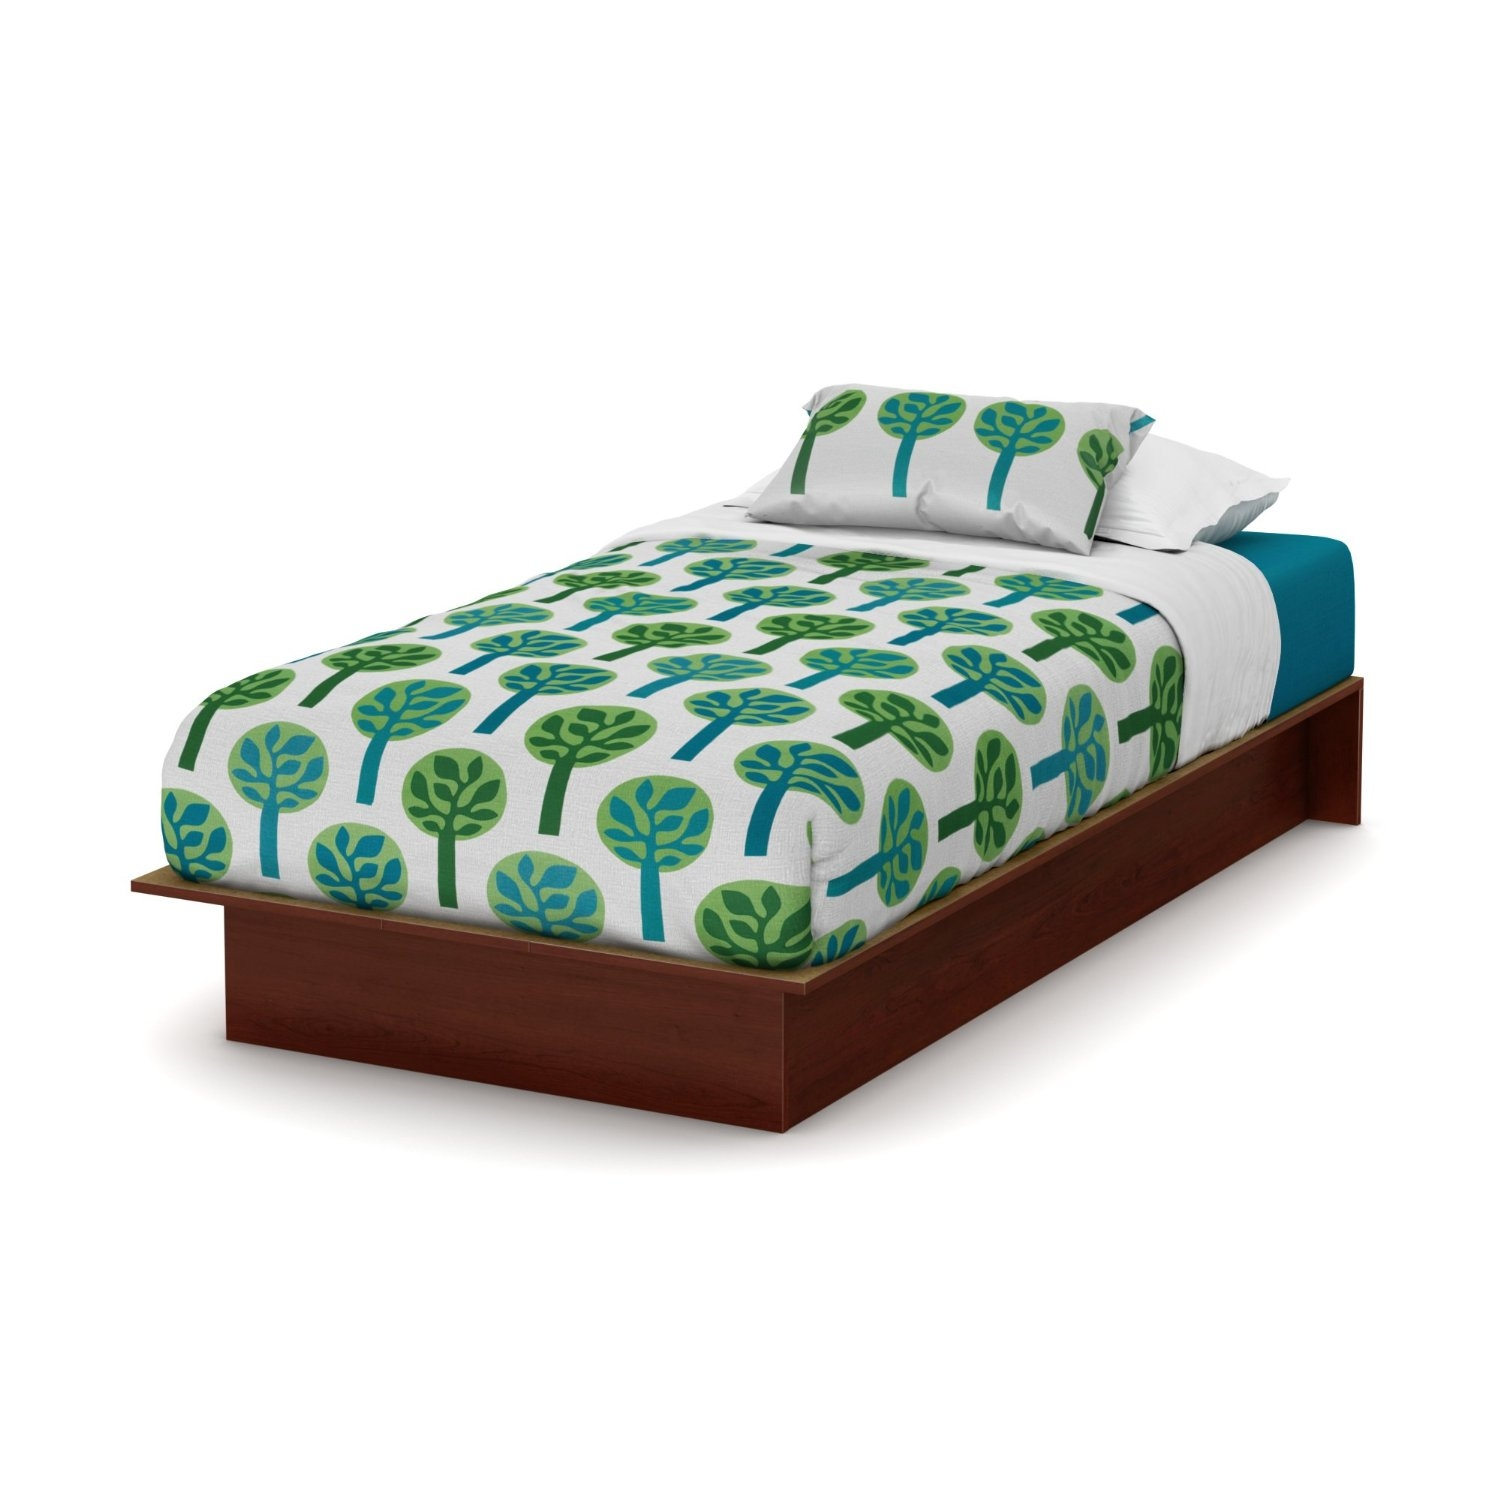 Twin Size Platform Bed Frame In Royal Cherry Wood Finish Fastfurnishings Com